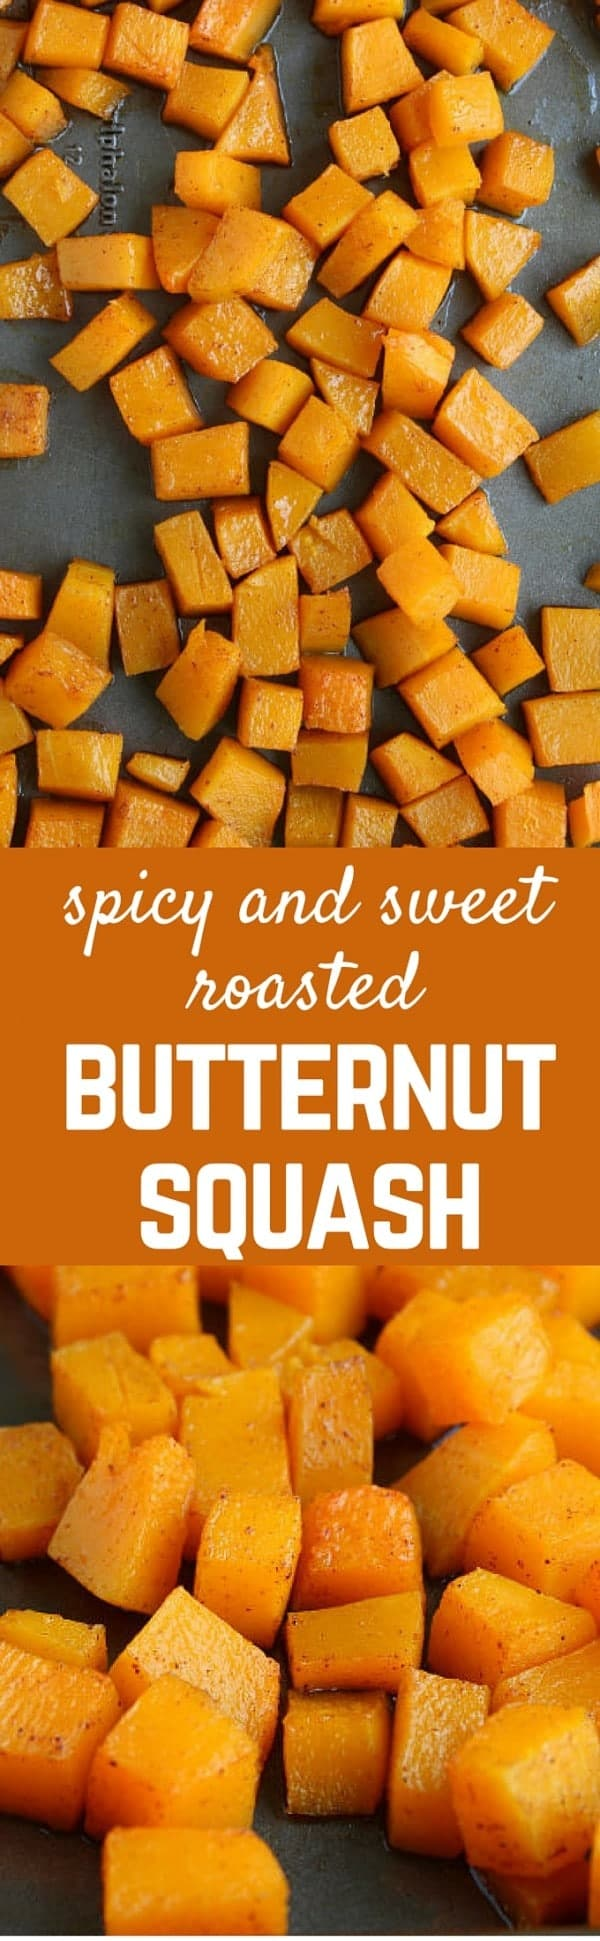 This roasted butternut squash that is both spicy and sweet is 100% perfect! It's an easy and healthy side dish that the whole family will love.Get the recipe on RachelCooks.com!